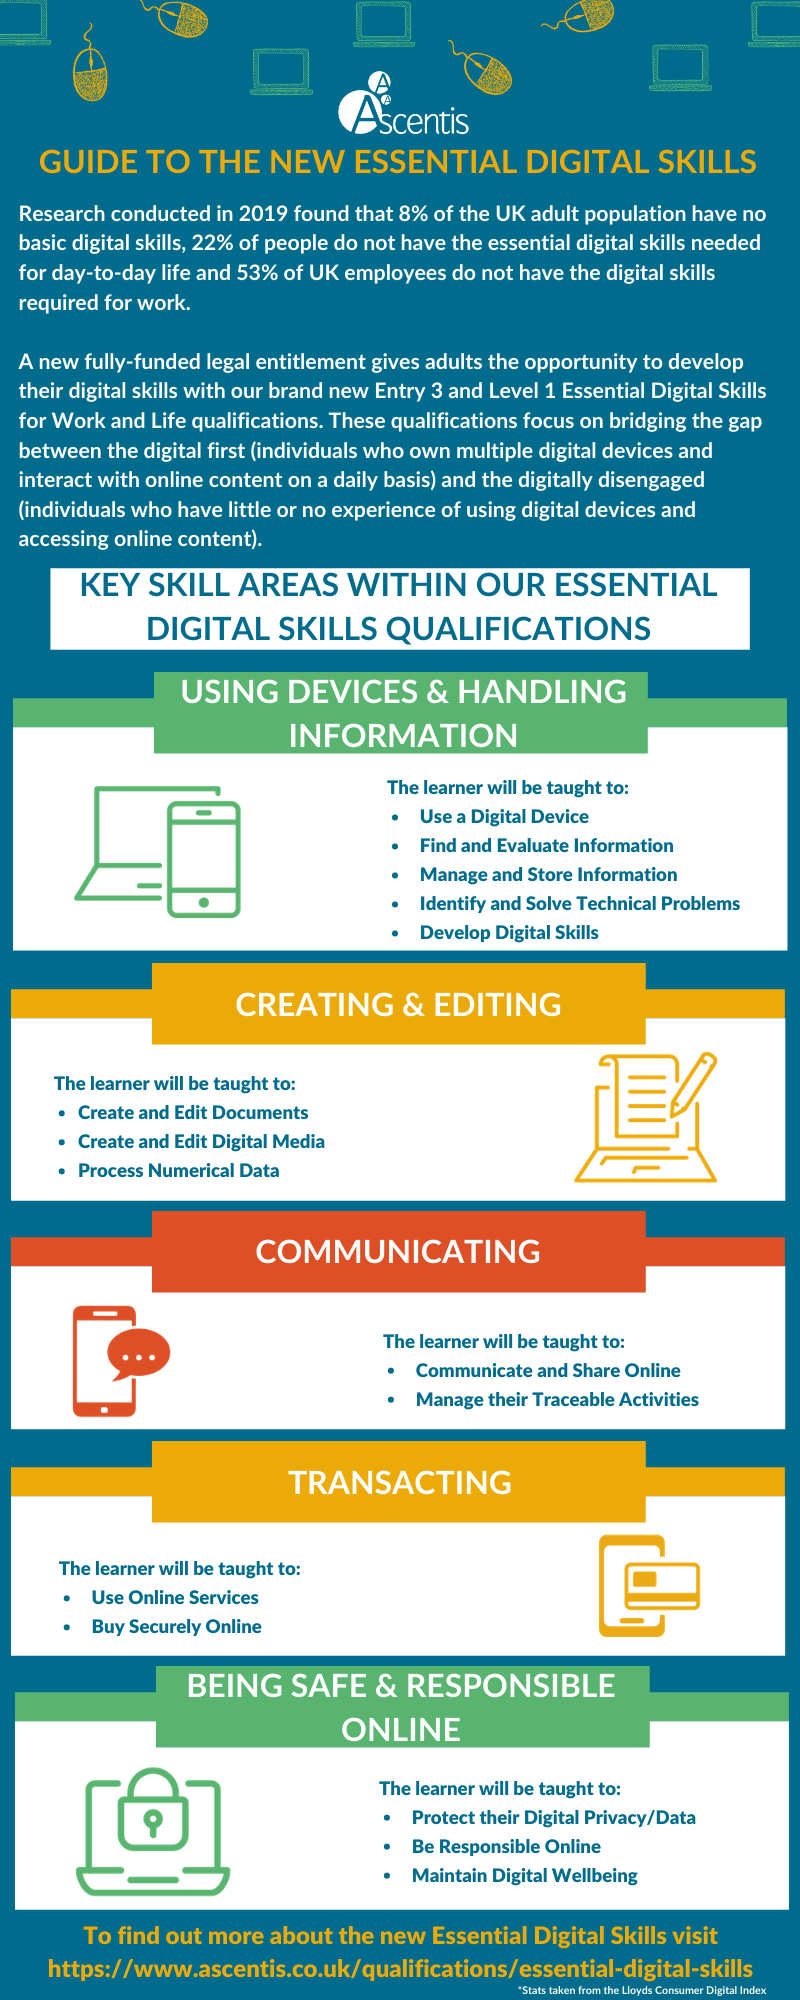 The Ascentis Guide to the new Essential Digital Skills